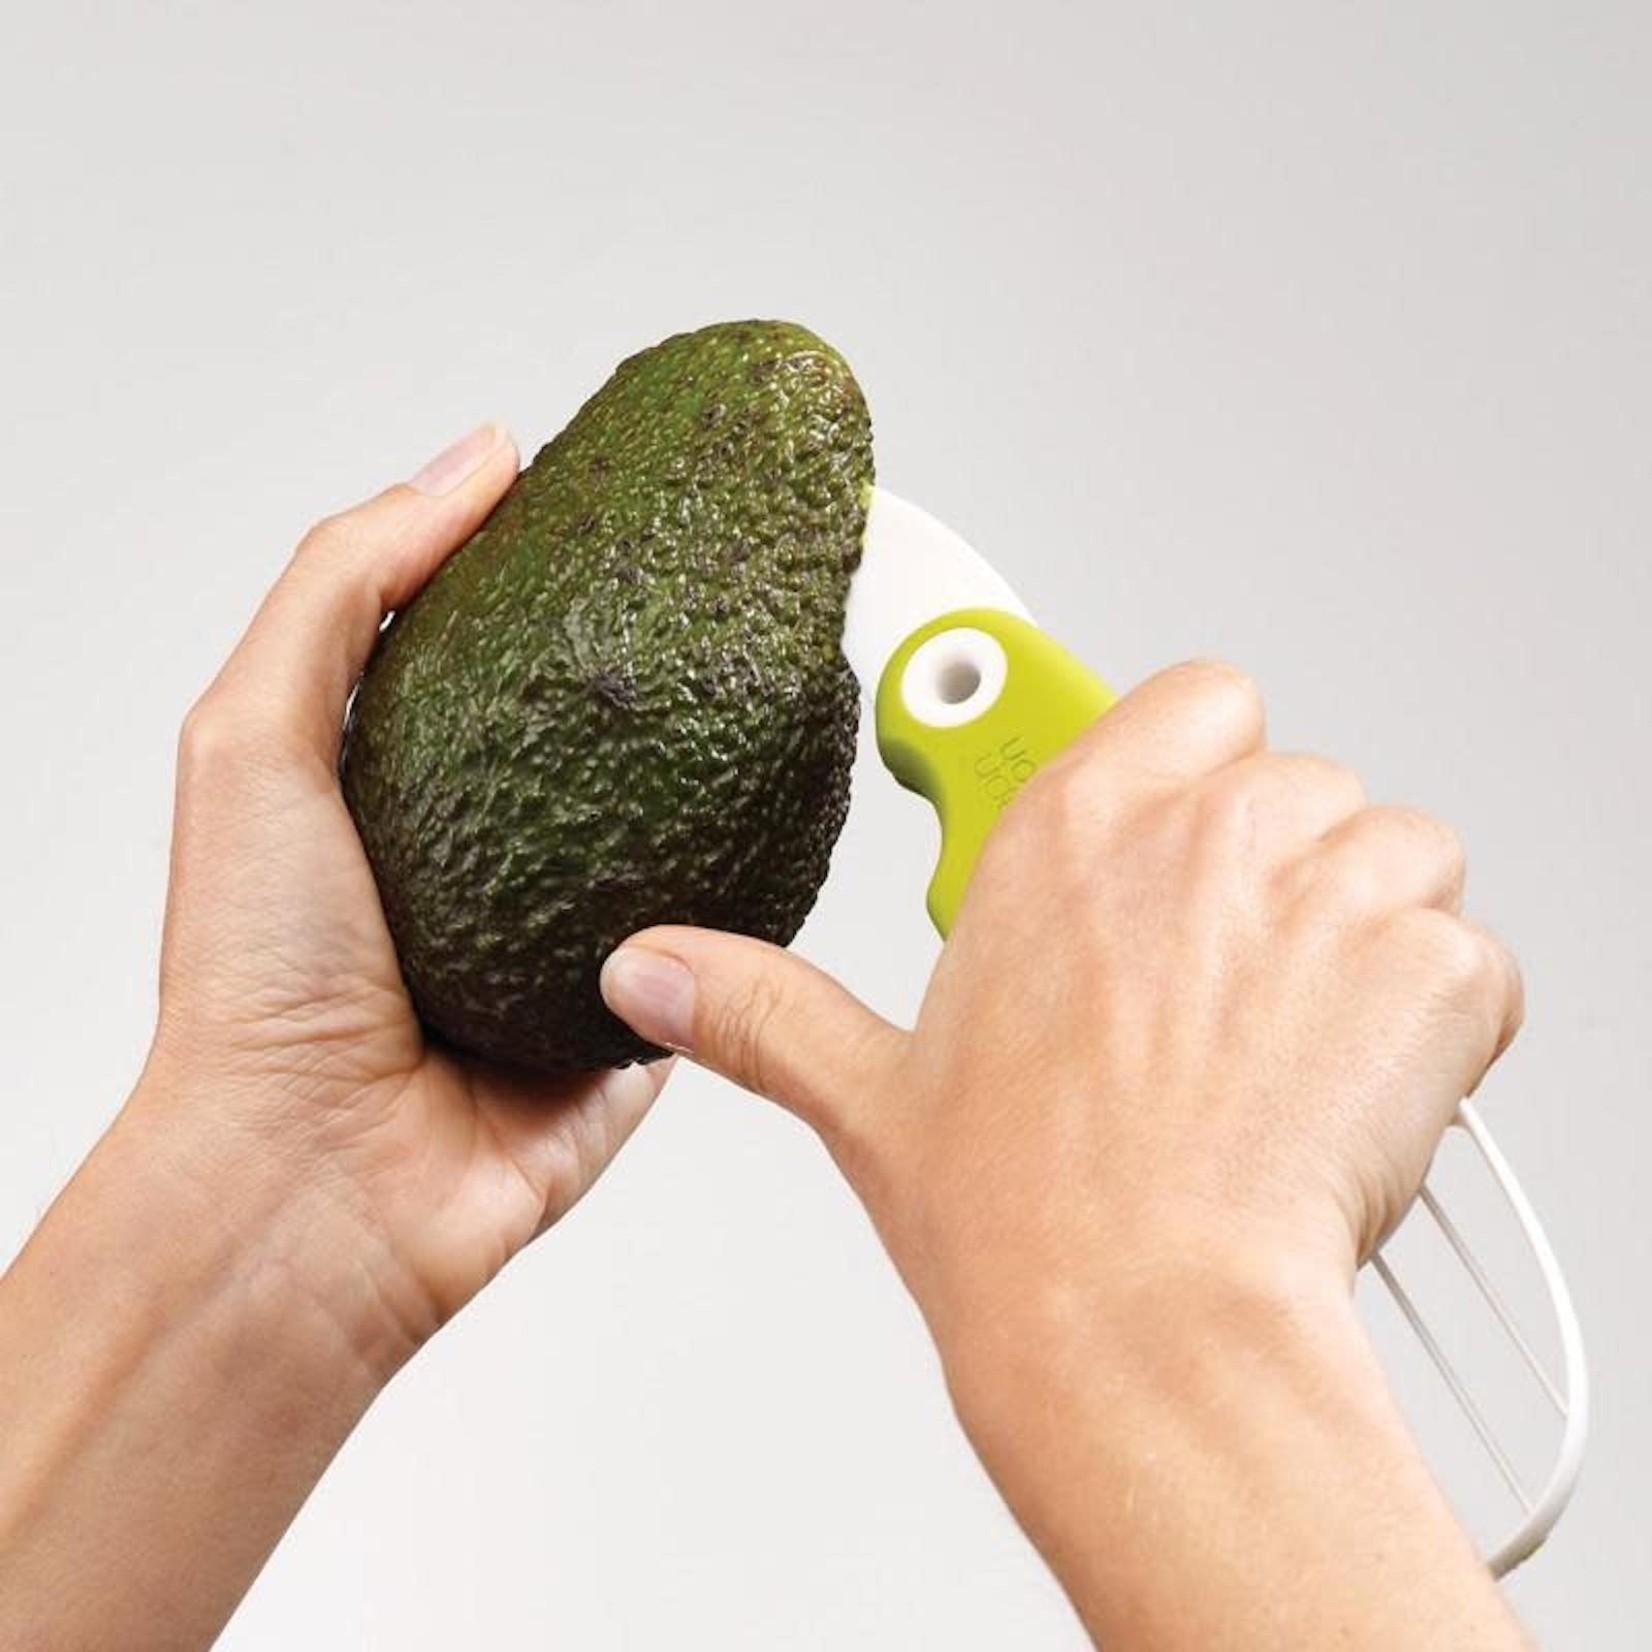 Joseph Joseph 3in1 Avocado Tool